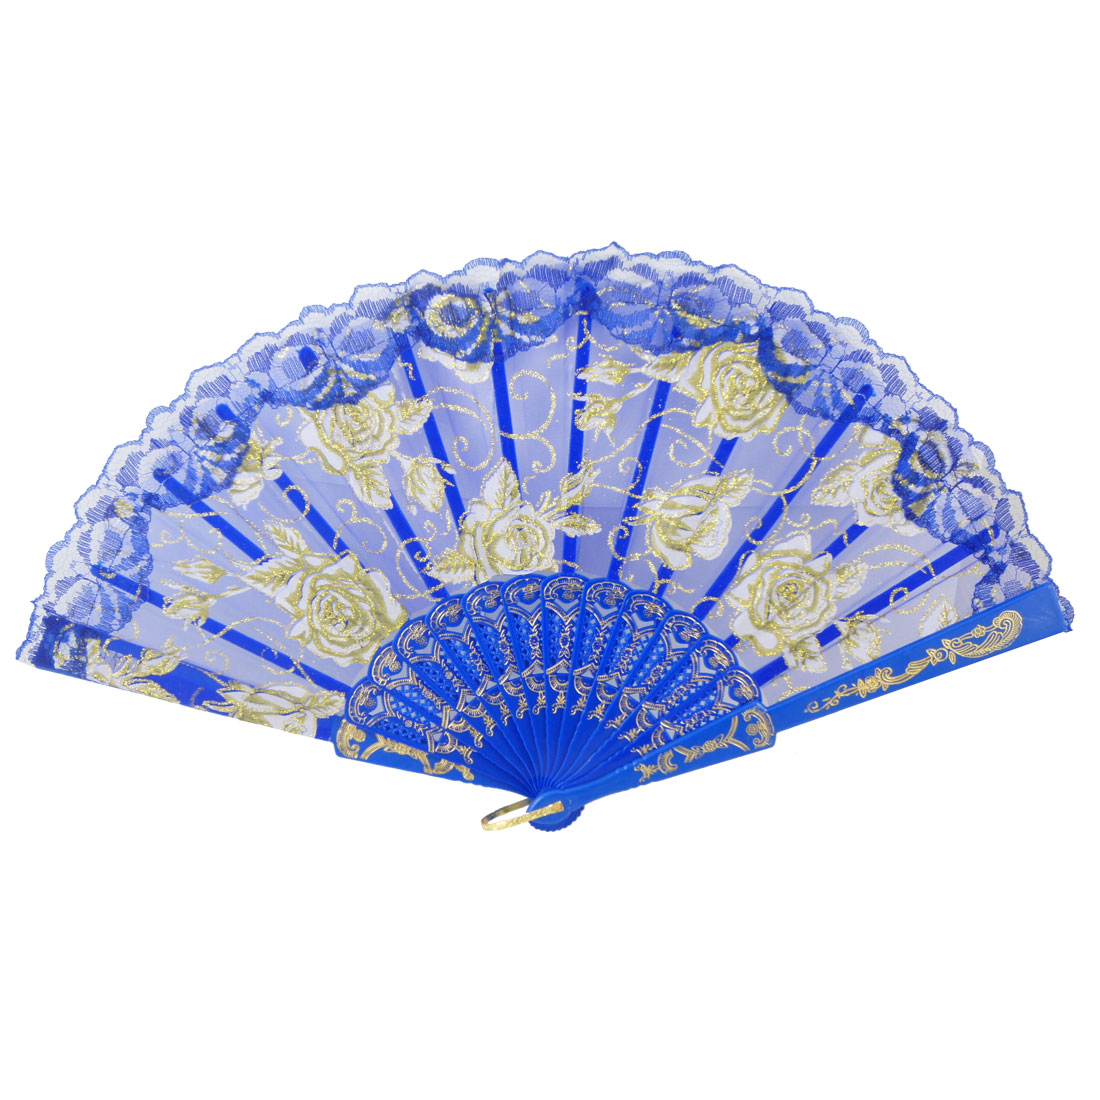 Blue Plastic Ribs Glittery Flower Print Foldable Dancing Hand Fan for Lady